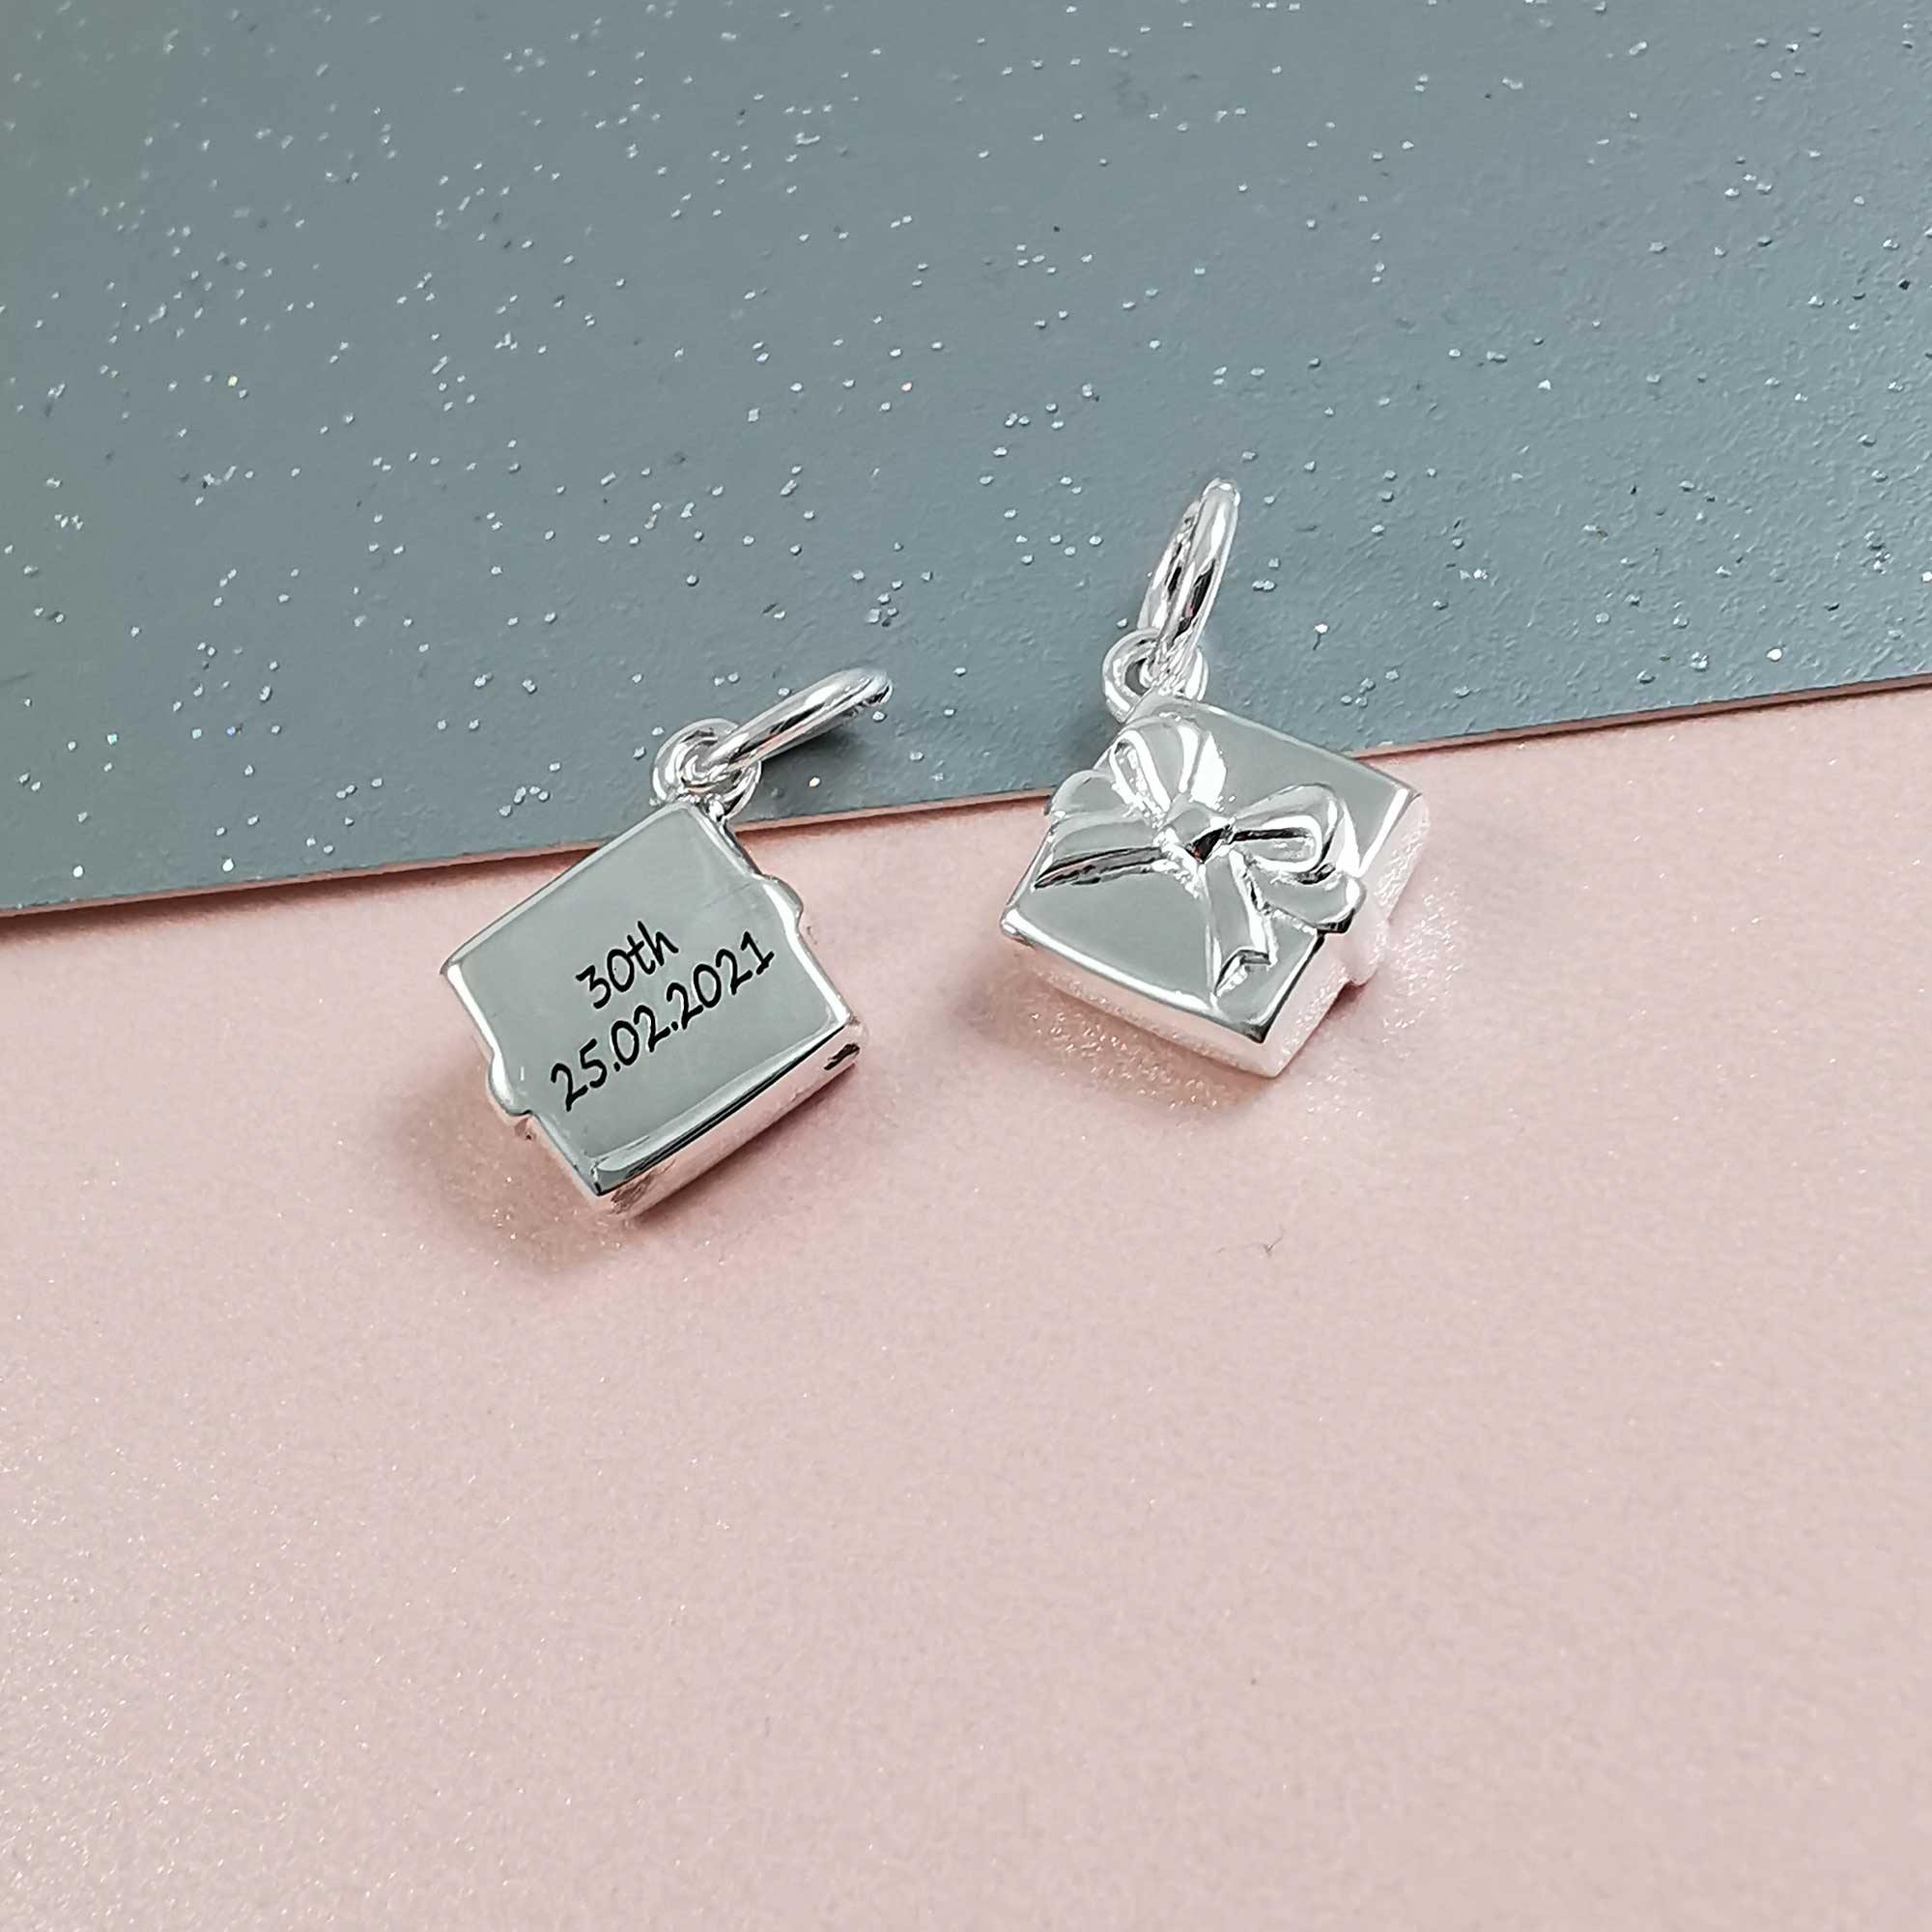 personalised present 30th birthday charm for bracelet pendant necklace